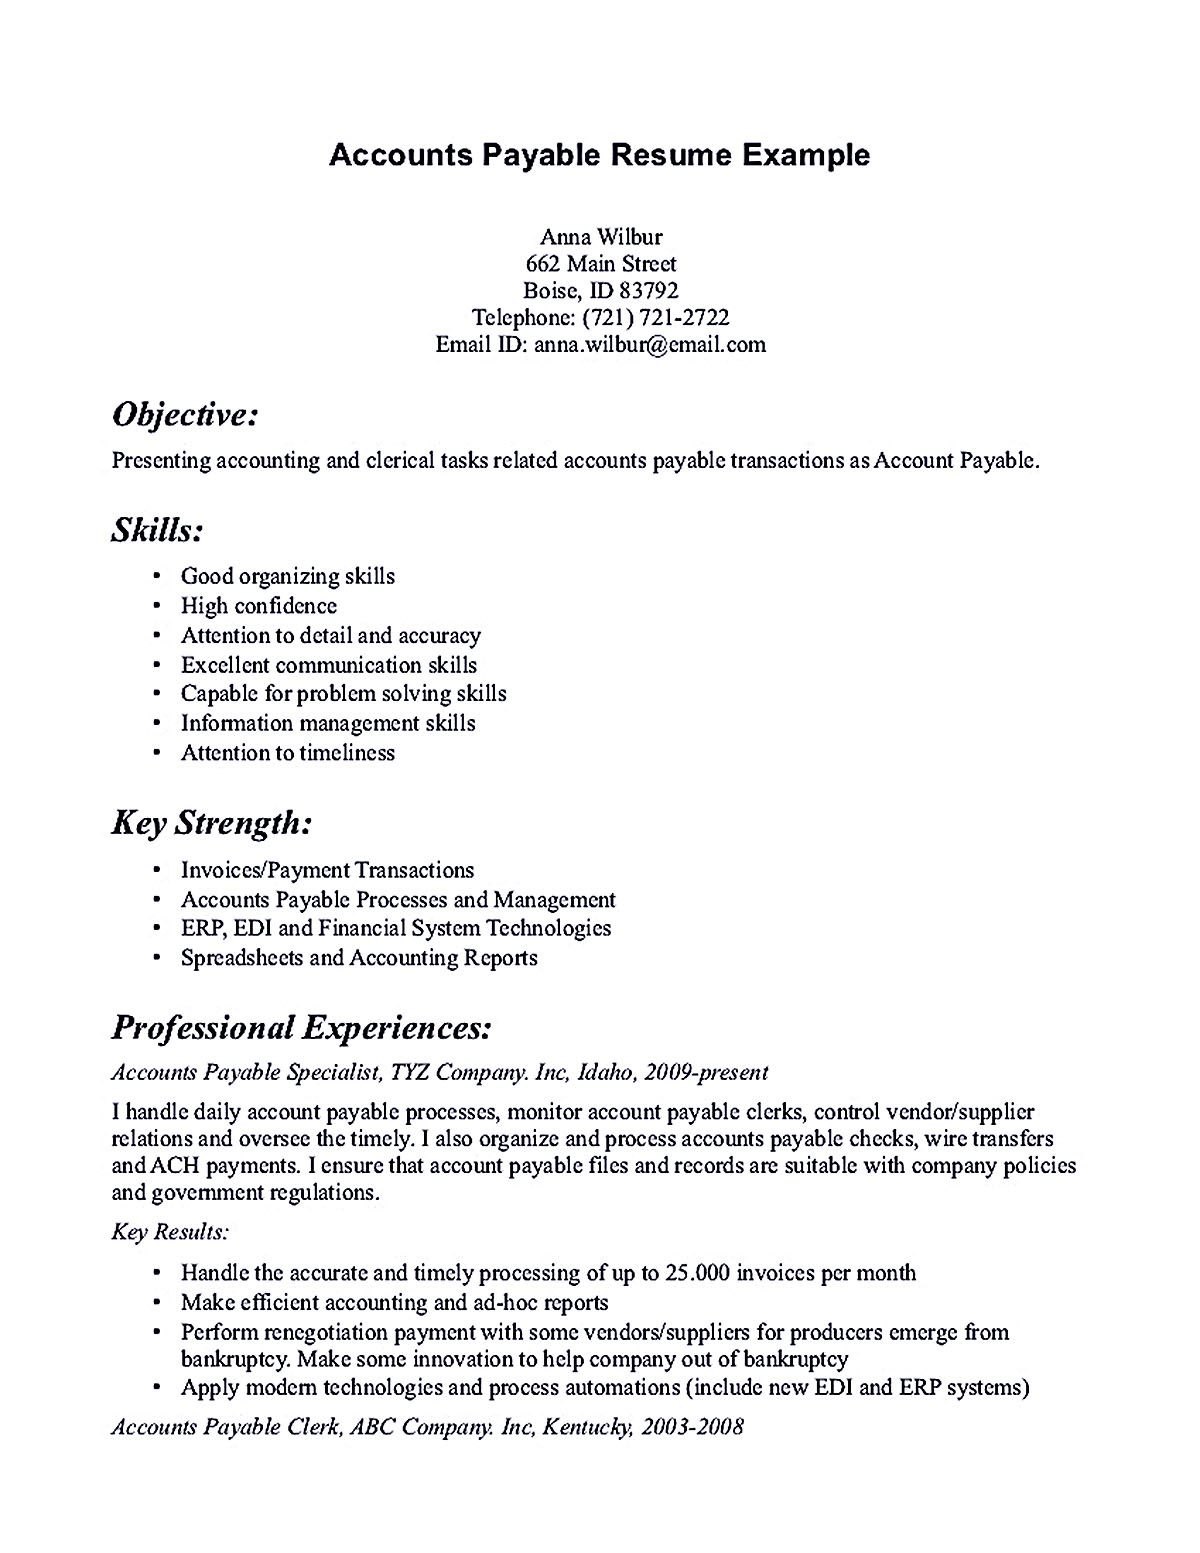 Resume Consultant Account Payable Resume Display Your Skills As Account Payable